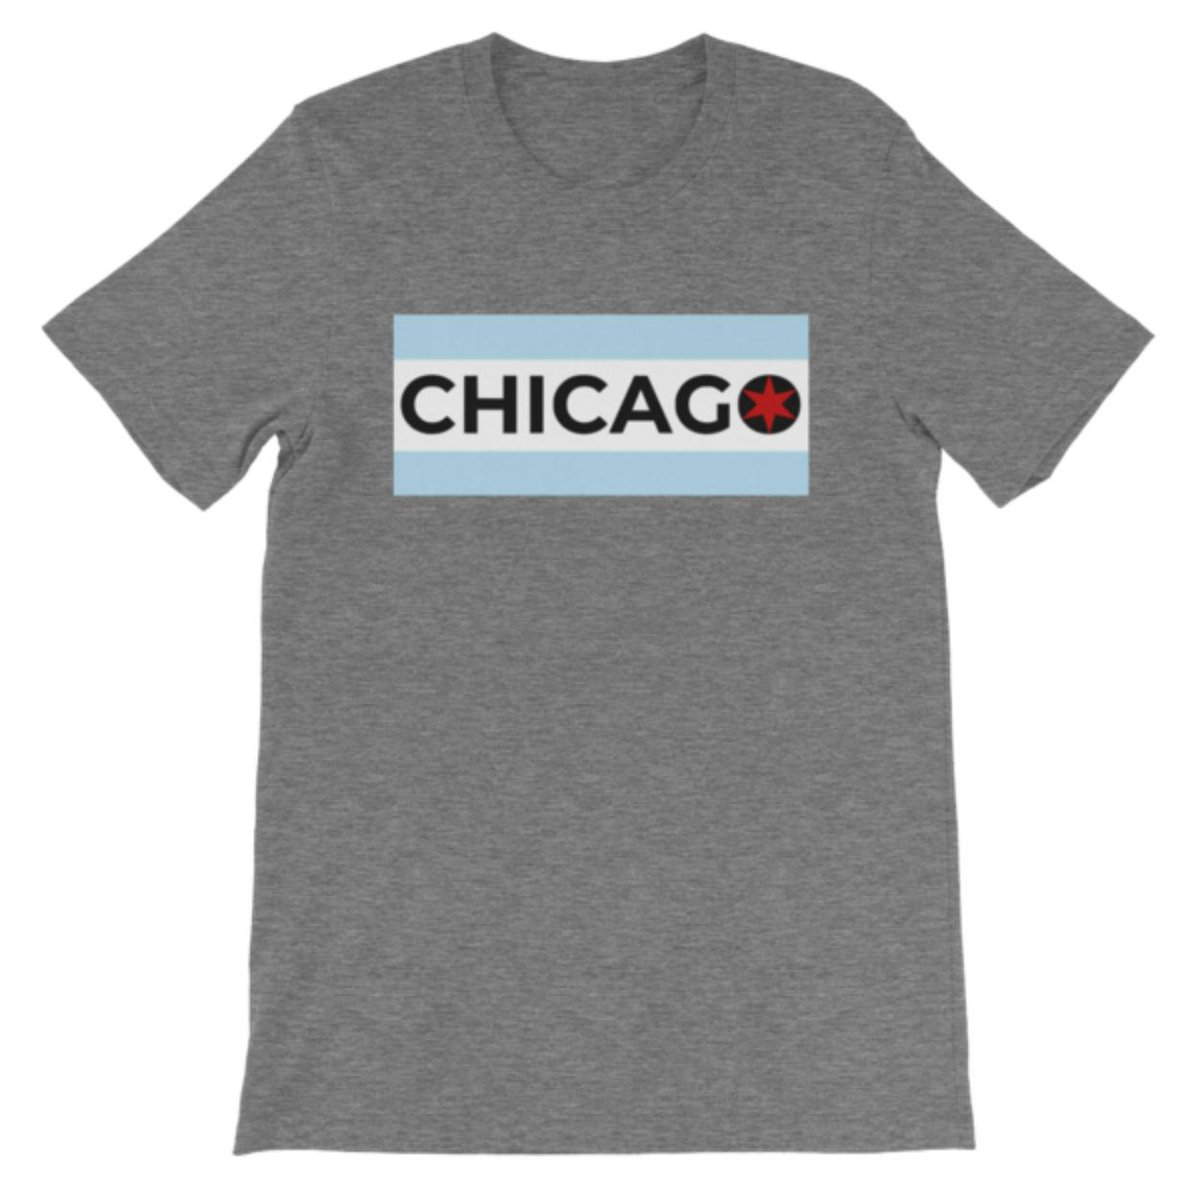 Happy Birthday to the best city in the world, #Chicago! . https://t.co/XnTif7oJ0z . . #allographictees #chicagoday #HappyBirthdayChicago #chitown #secondcity to none #windycity #chicagolife #chicagoliving #chicagolove #chicagolover #chicagolovers #chicagolifestyle #chicagostyle https://t.co/SsOjJfRHtc